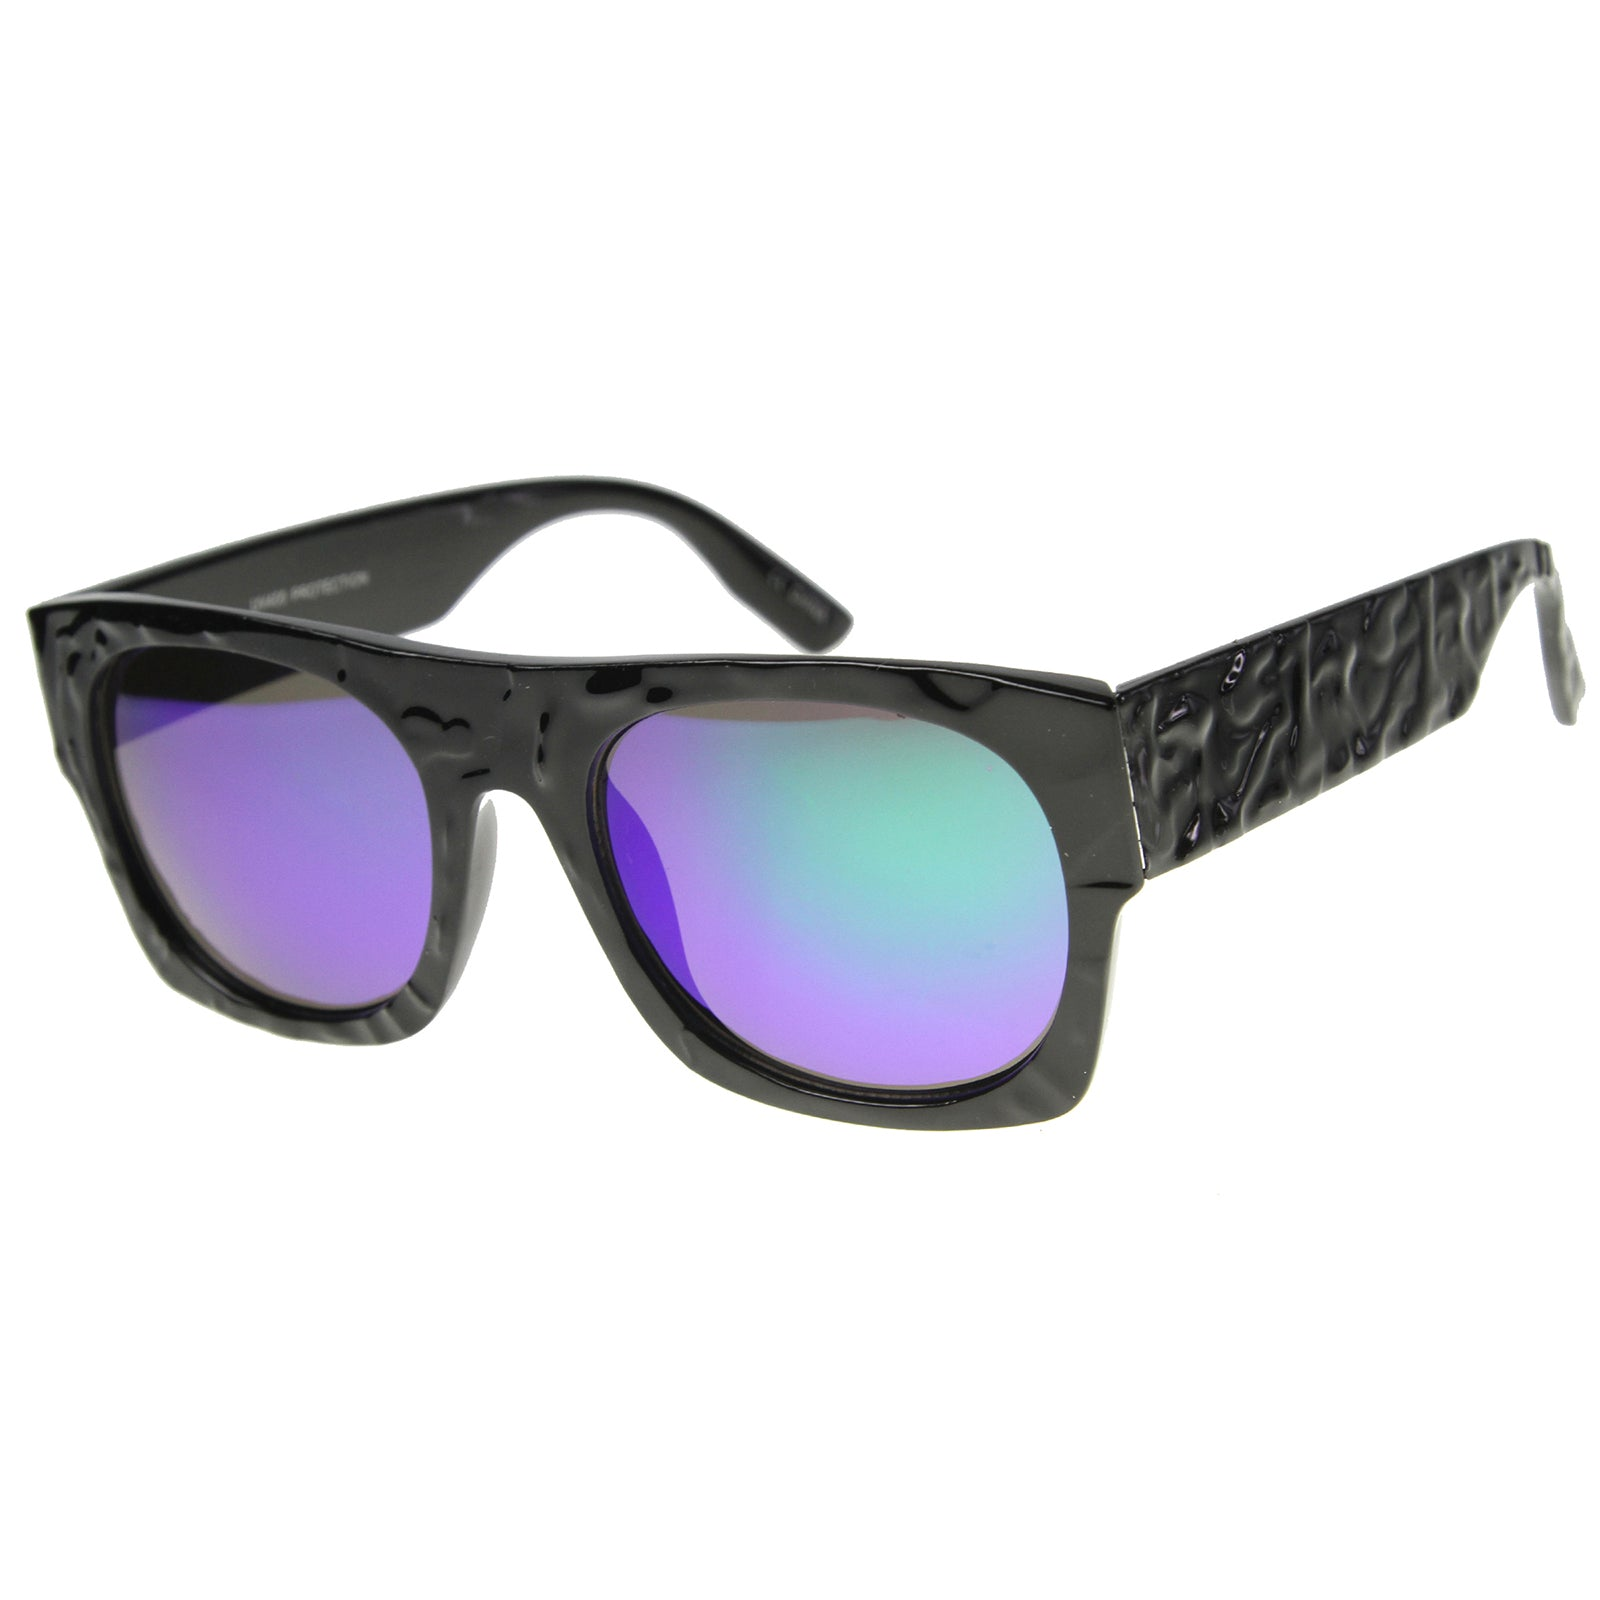 Unisex Rectangular Sunglasses With UV400 Protected Mirrored Lens - sunglass.la - 8